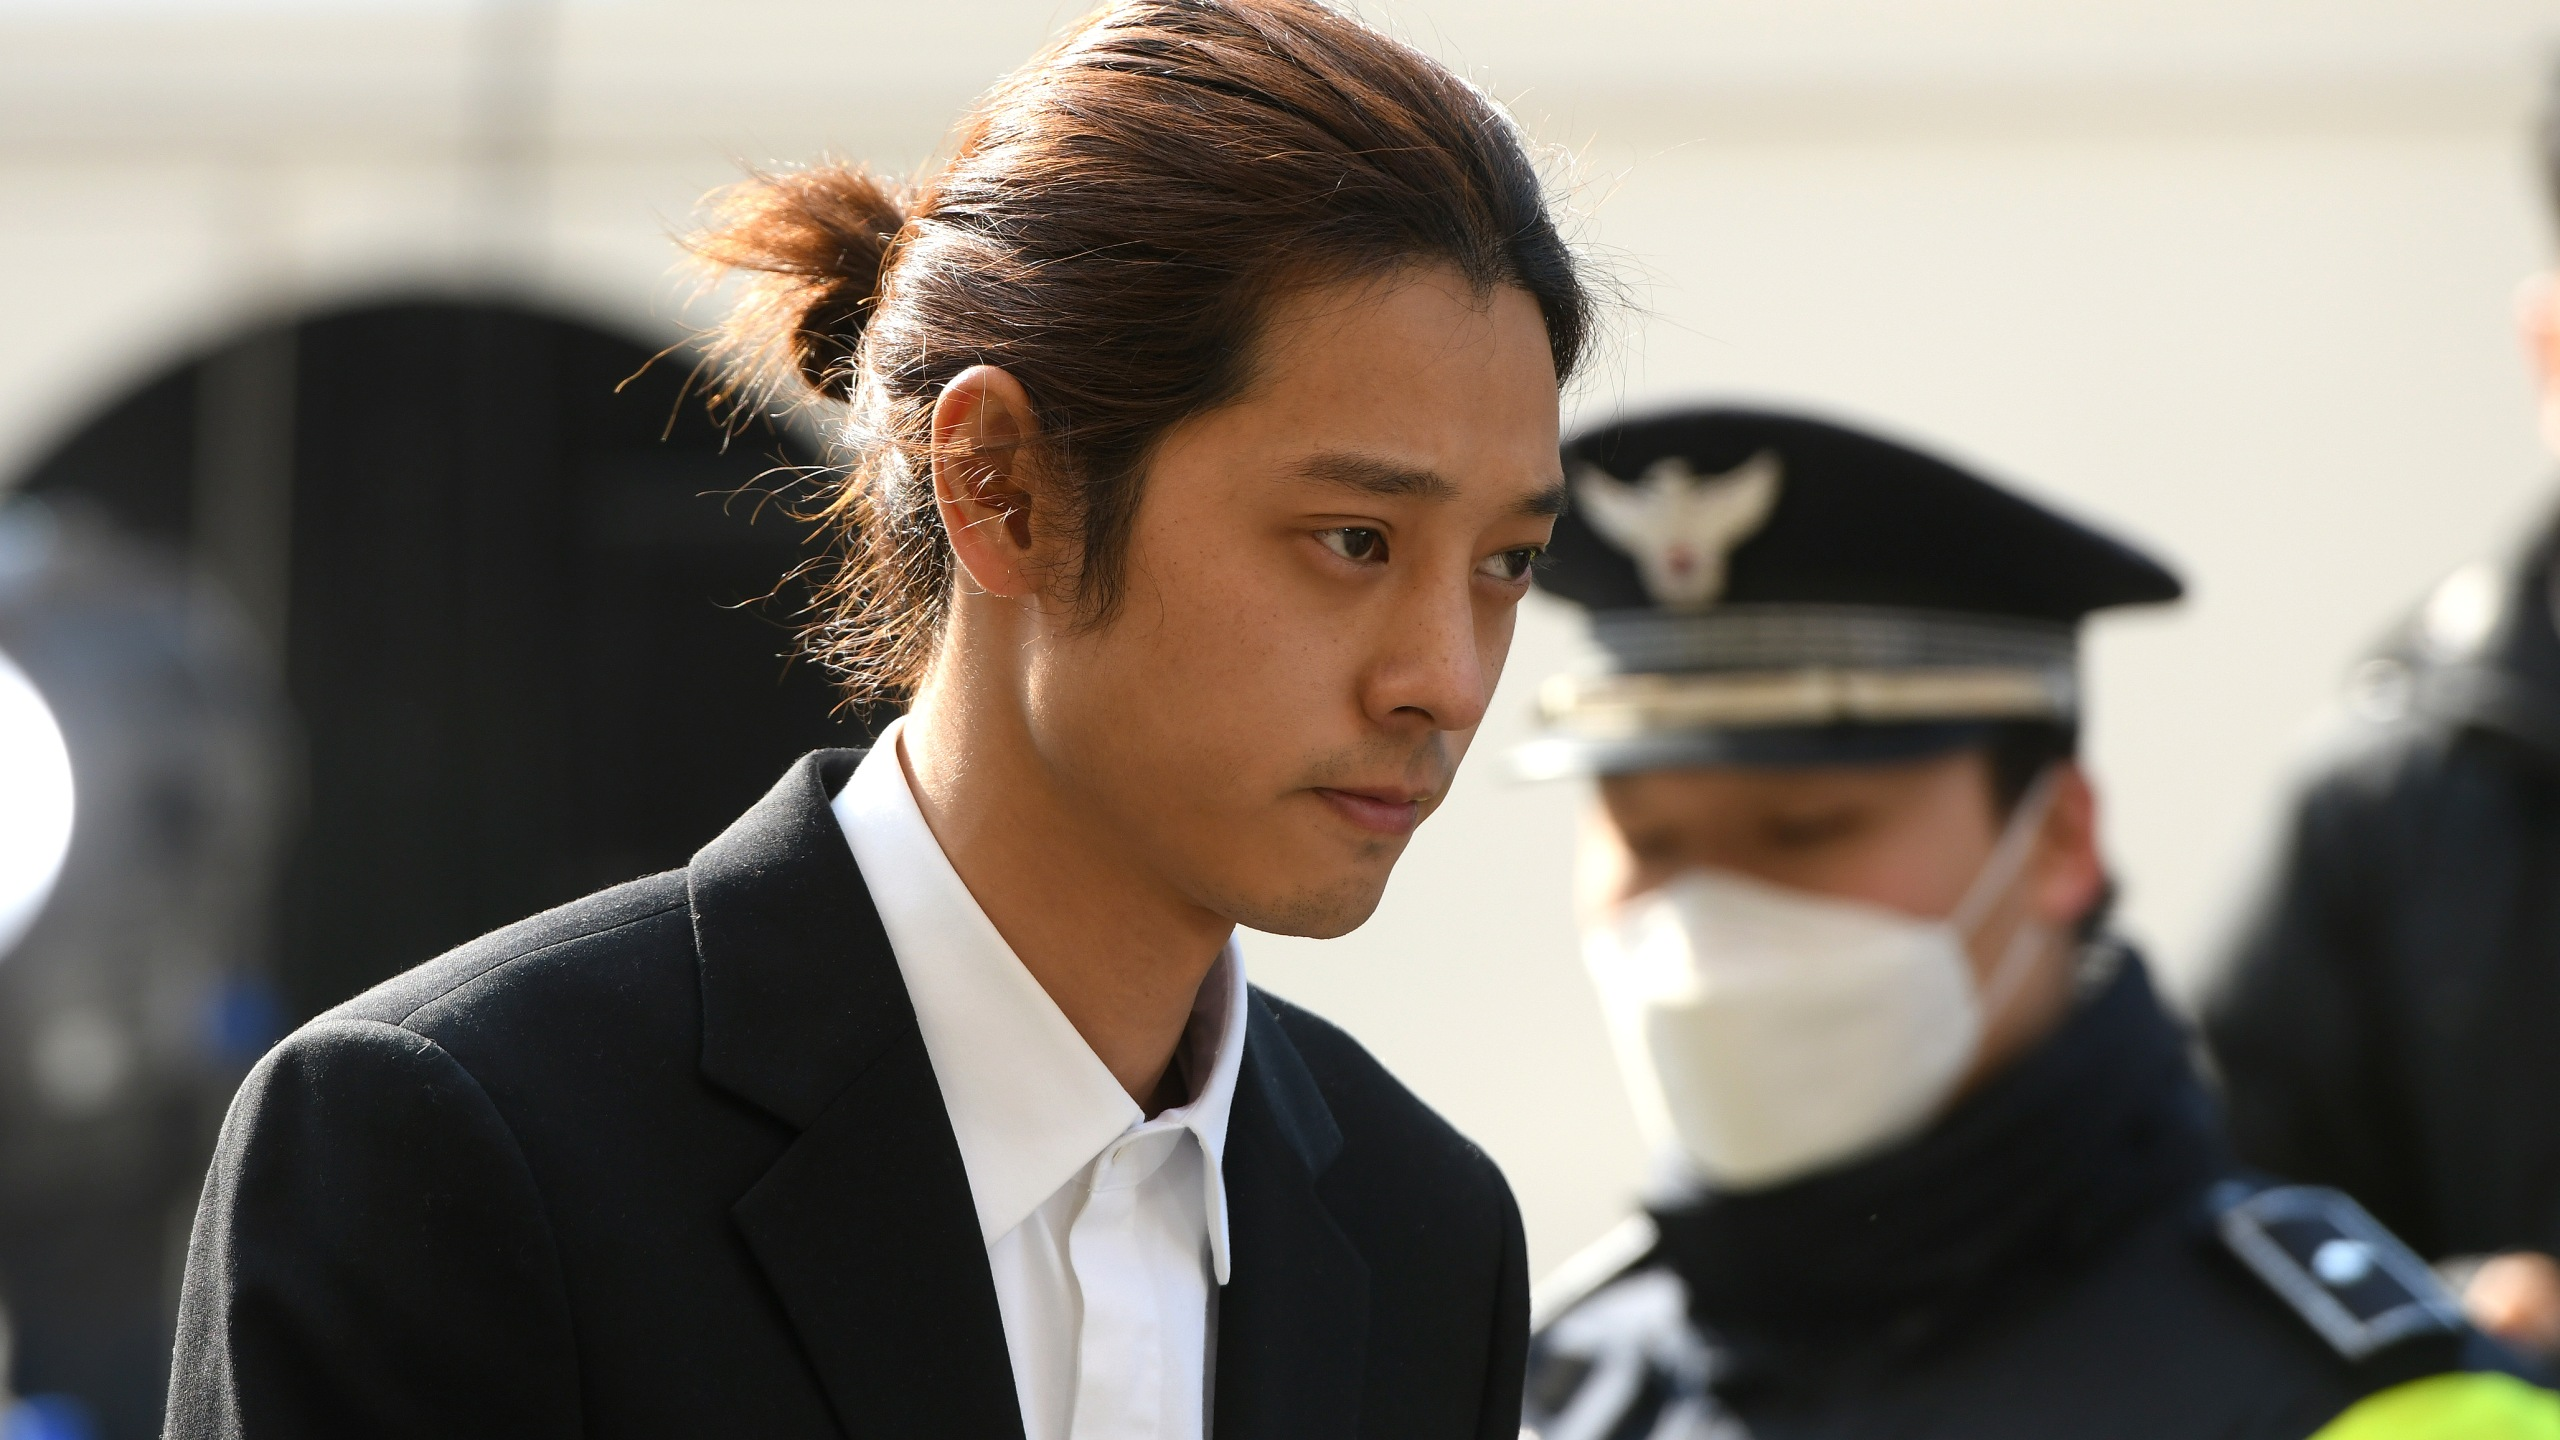 K-pop star Jung Joon-young arrives for questioning at the Seoul Metropolitan Police Agency in Seoul, South Korea on March 14, 2019. (Credit: JUNG YEON-JE/AFP via Getty Images)